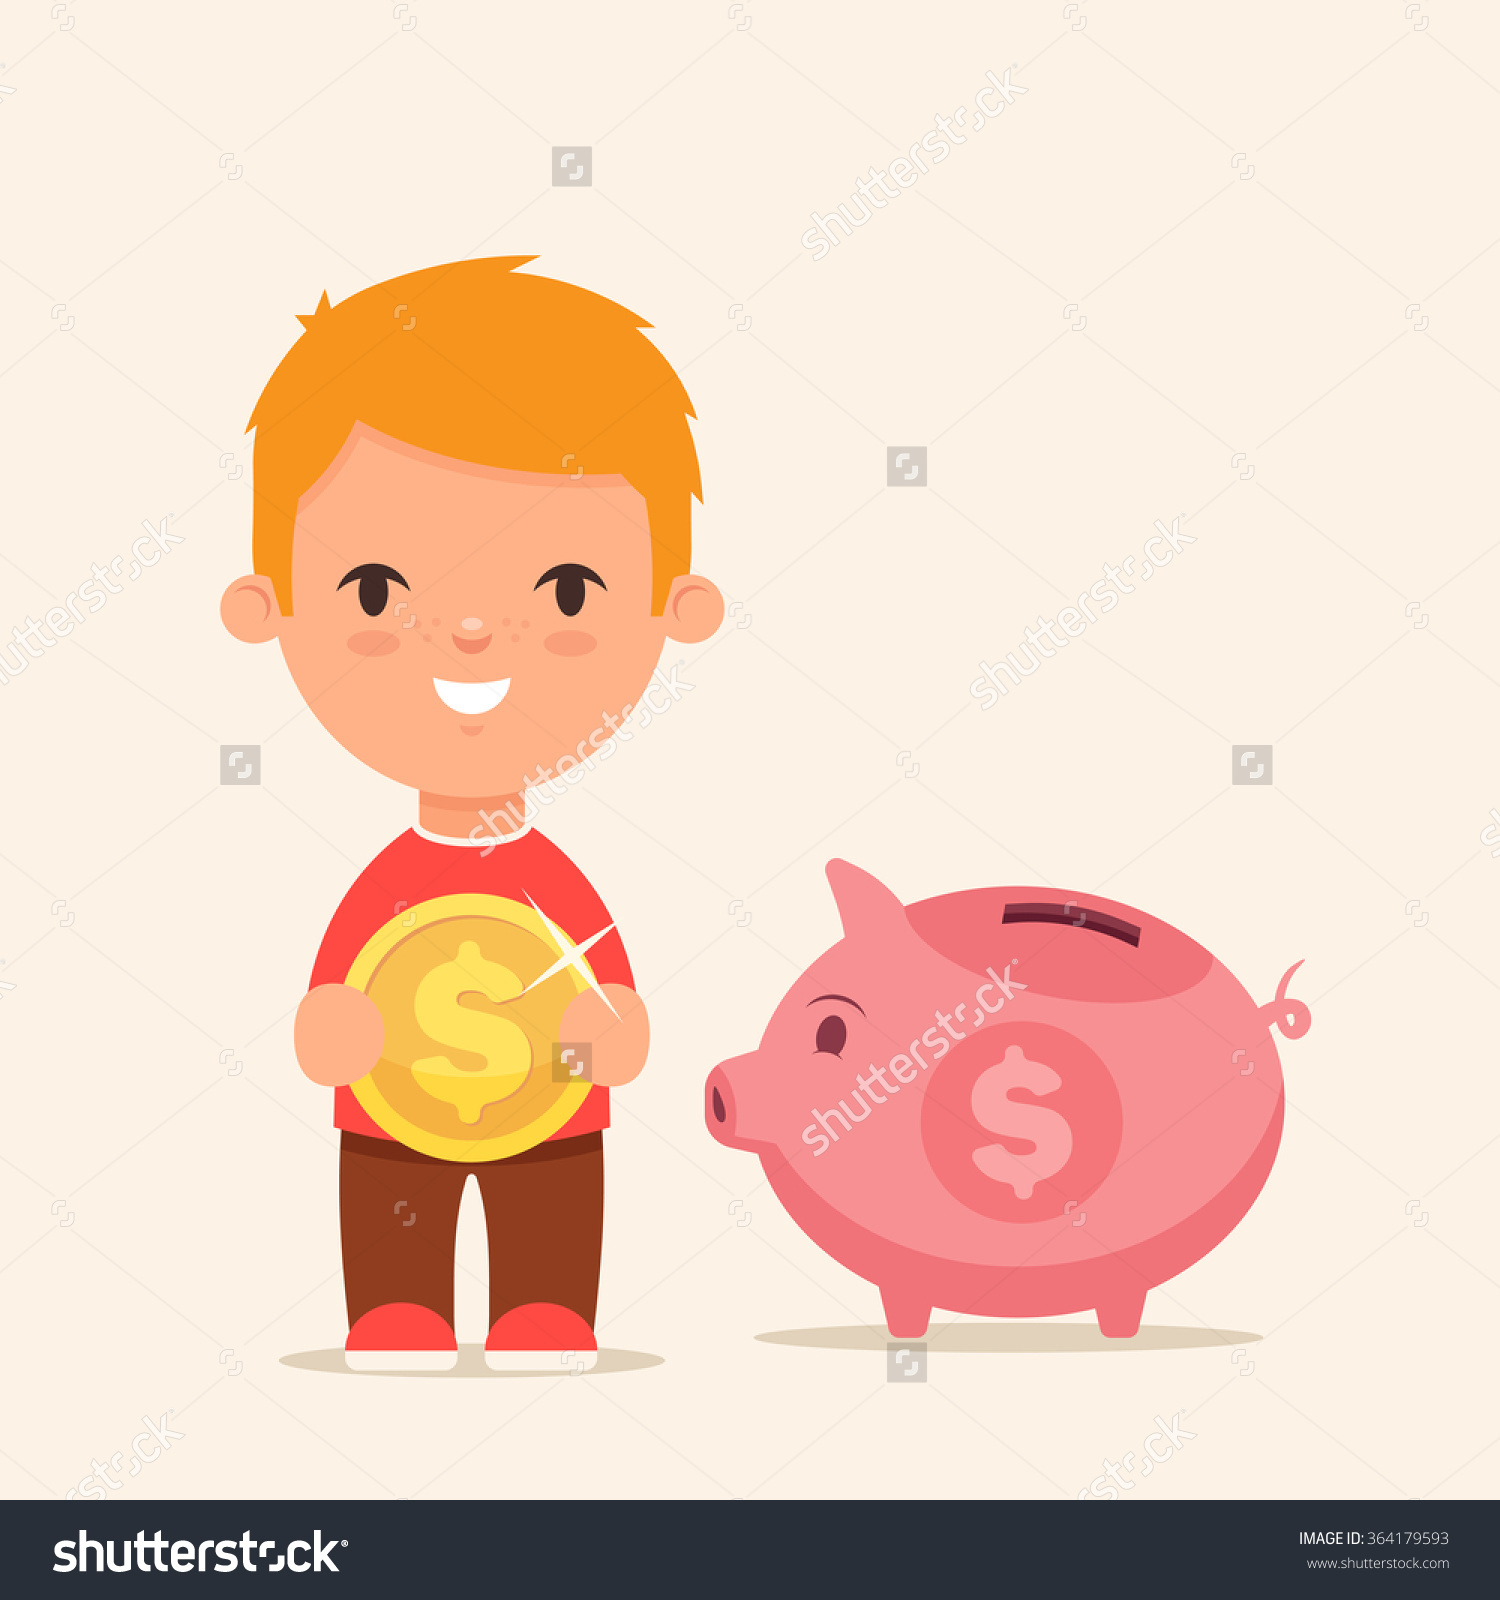 Piggy bank clipart kids saving graphic free download Cute Cartoon Kid Big Golden Coin Stock Vector 364179593 - Shutterstock graphic free download